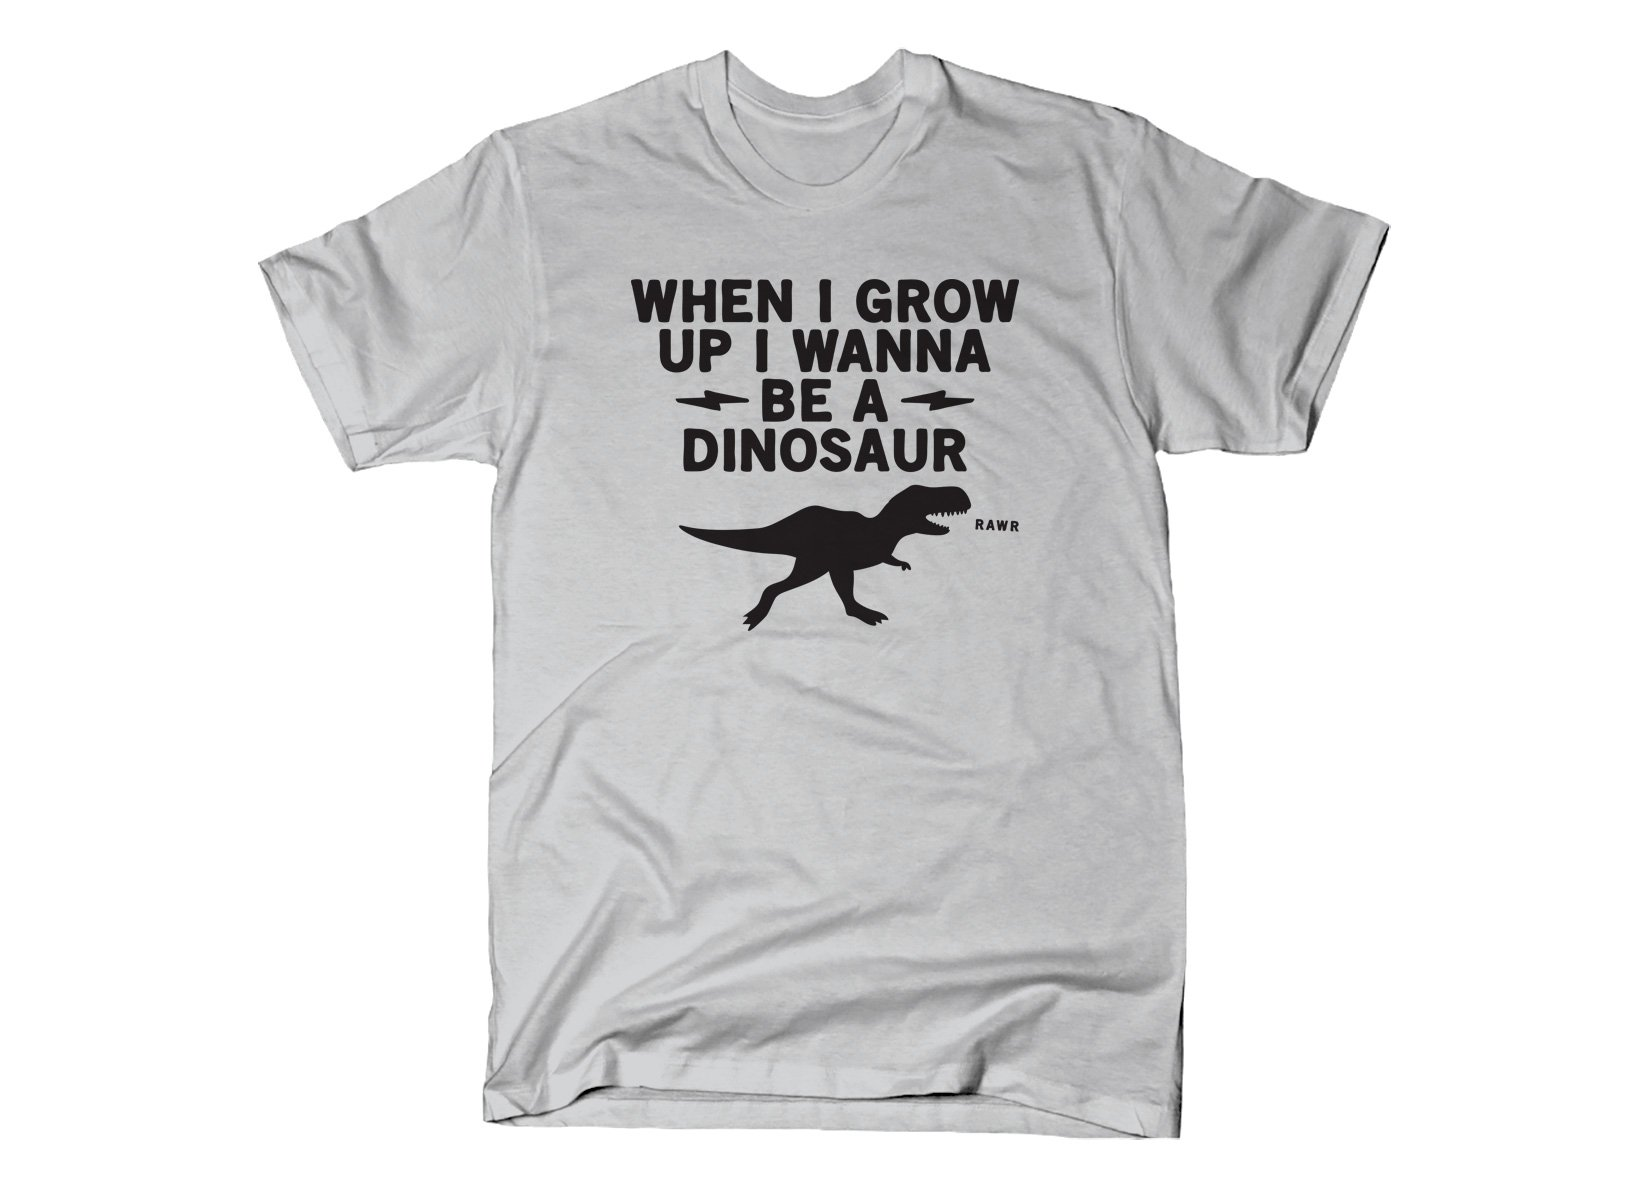 When I Grow Up I Wanna Be A Dinosaur on Mens T-Shirt